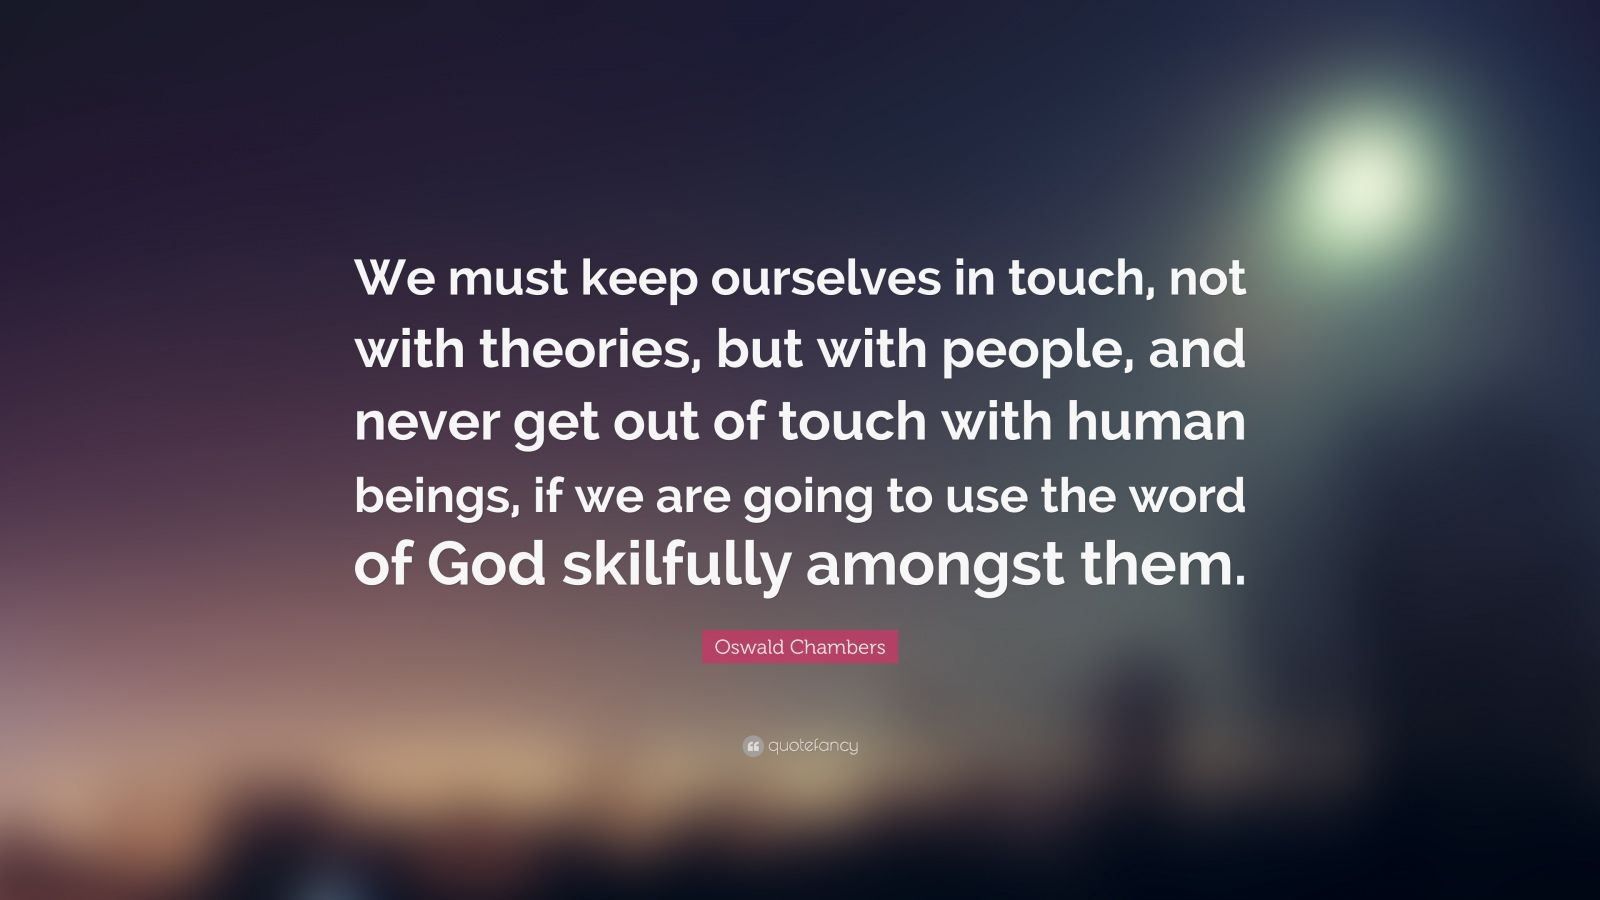 "Oswald Chambers Quote: ""We must keep ourselves in touch, not with theories, but with people, and never get out of touch with human beings, if we are going to use the word of God skilfully amongst them."""